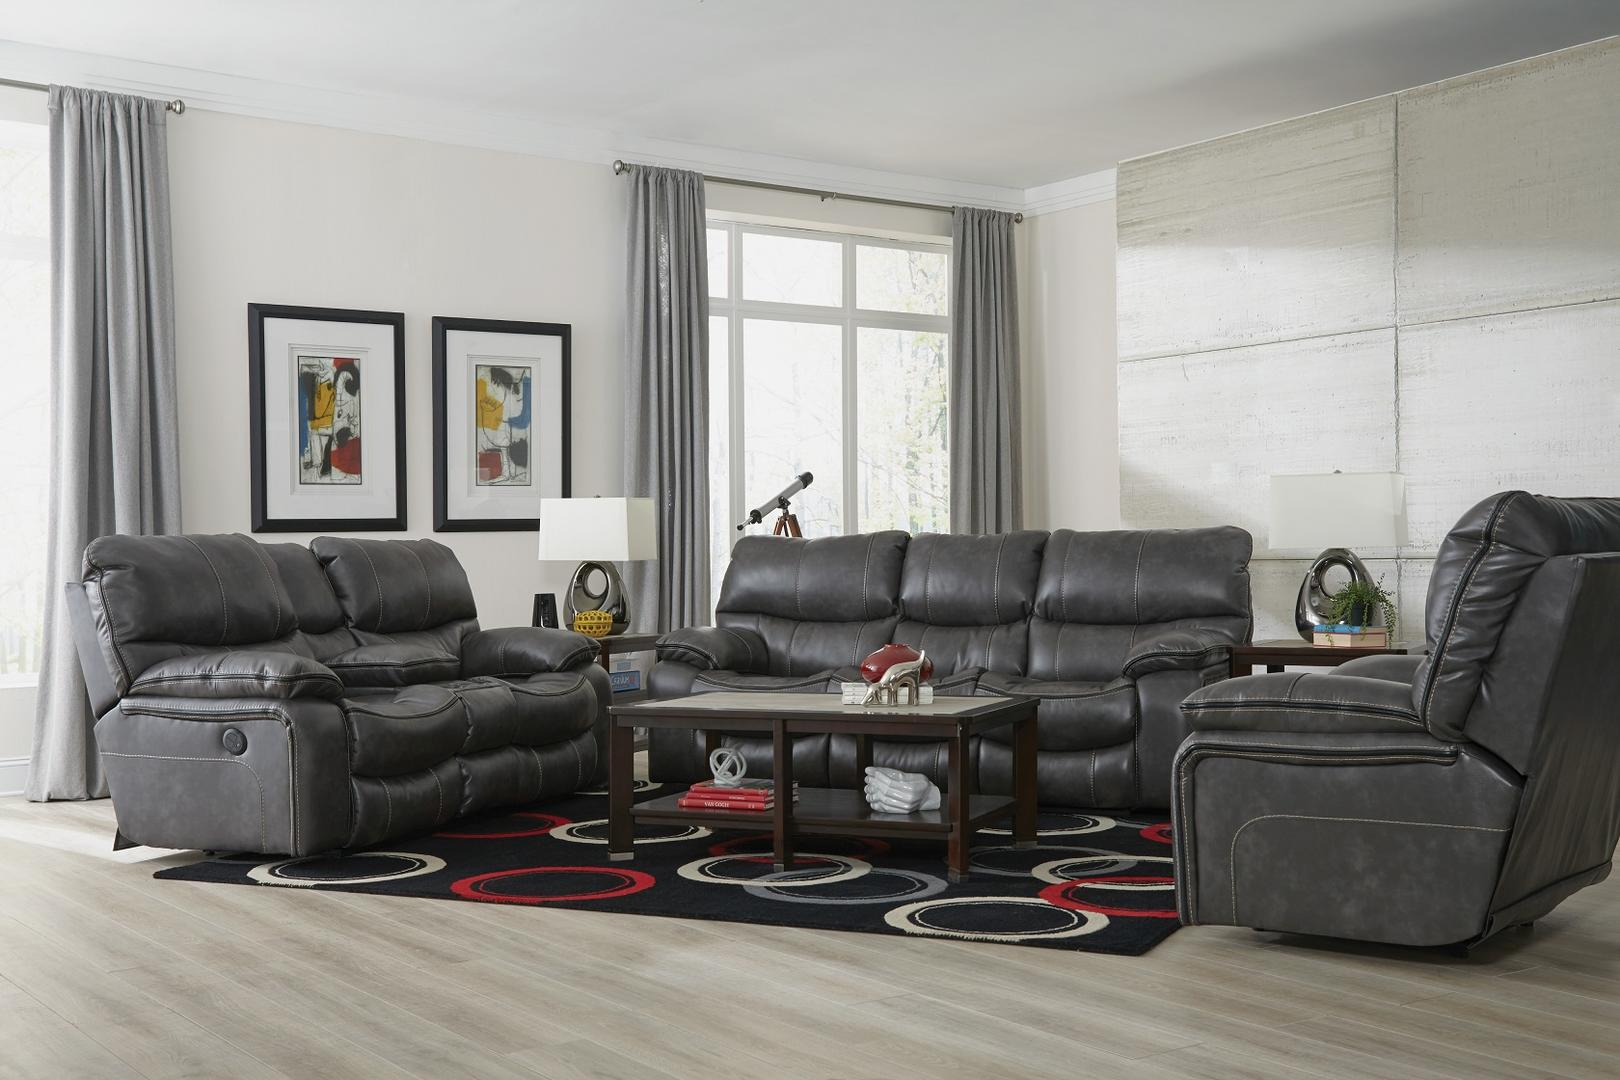 Catnapper Camden Gray Reclining Sofa and Loveseat